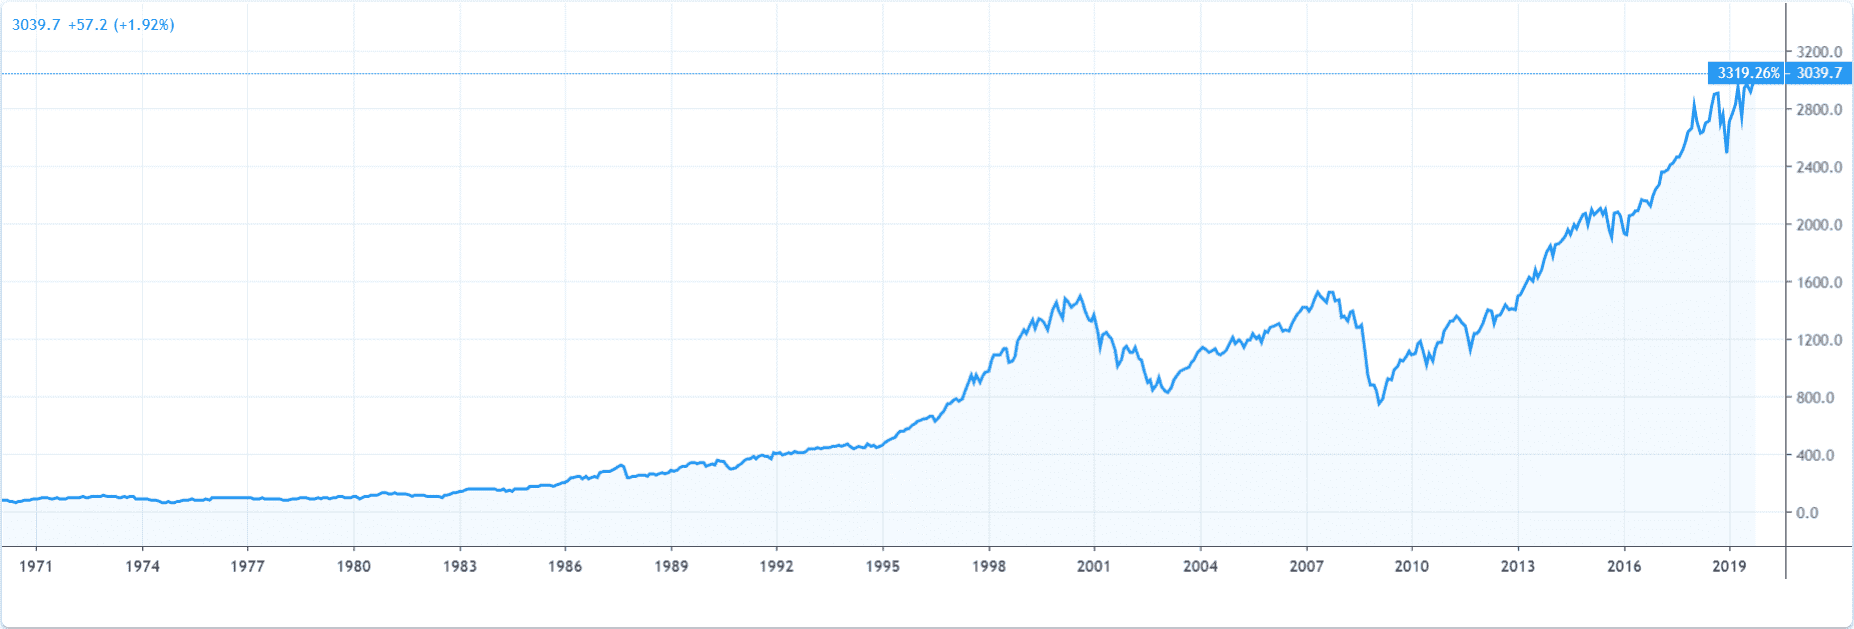 График Index S&P 500